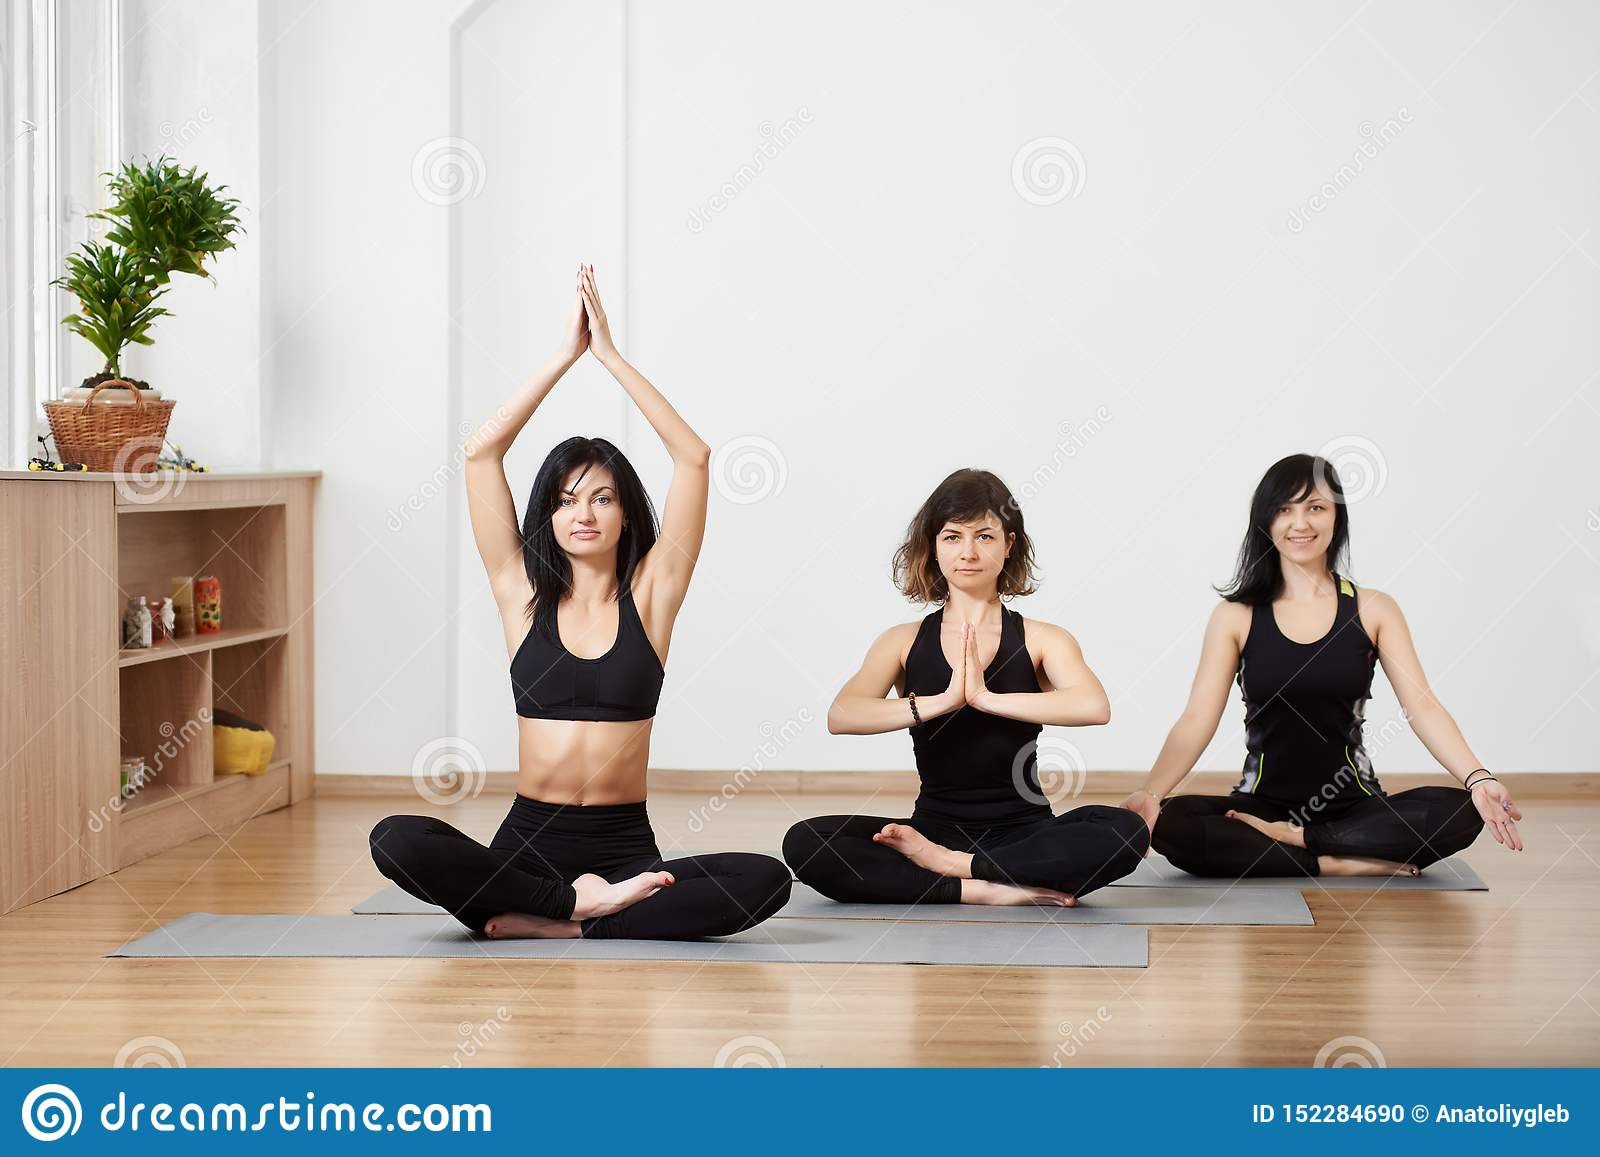 Group of young female friends sitting diagonally on floor on exercise mat, meditating together in traditional yoga pose